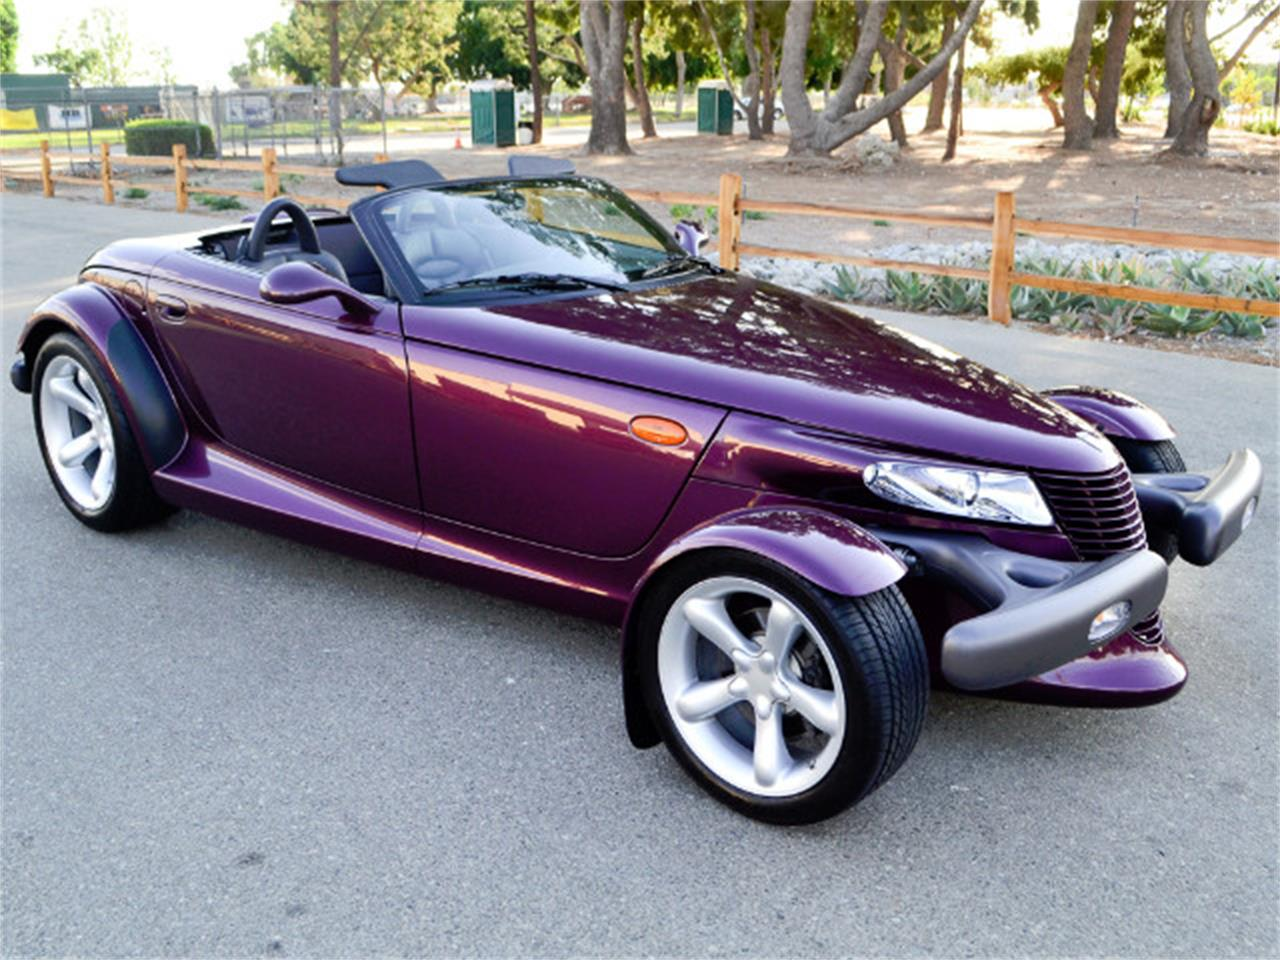 1999 Plymouth Prowler For Sale Classiccars Com Cc 910047